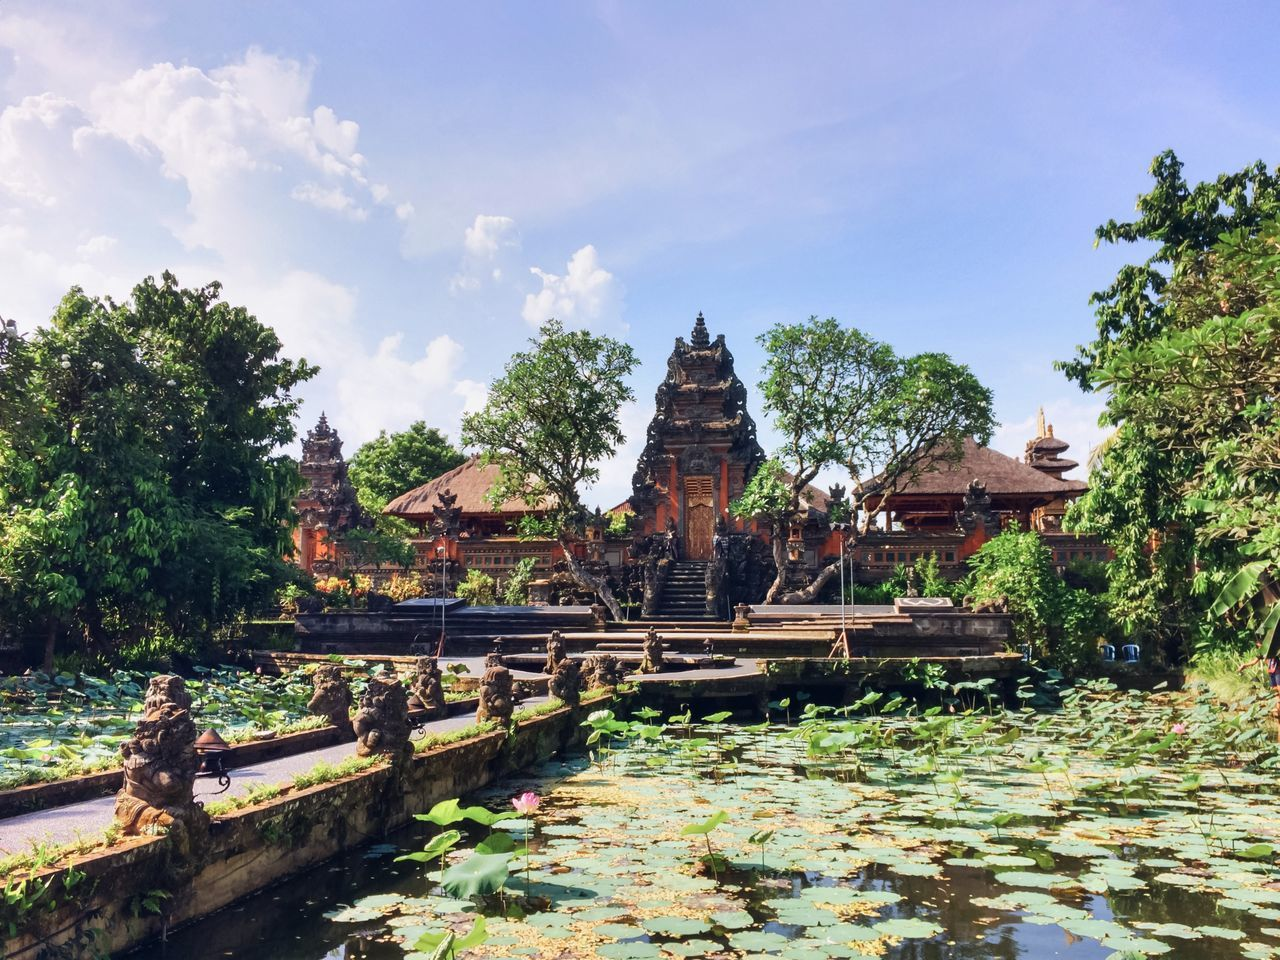 Bali Built Structure Cloud Cloud - Sky Day Growth Hindu Temple Hinduism Idyllic Lotus Nature No People Non-urban Scene Outdoors Plant Pond Scenics Sky Temple Temple - Building The Way Forward Tranquil Scene Tranquility Travel Destinations Water